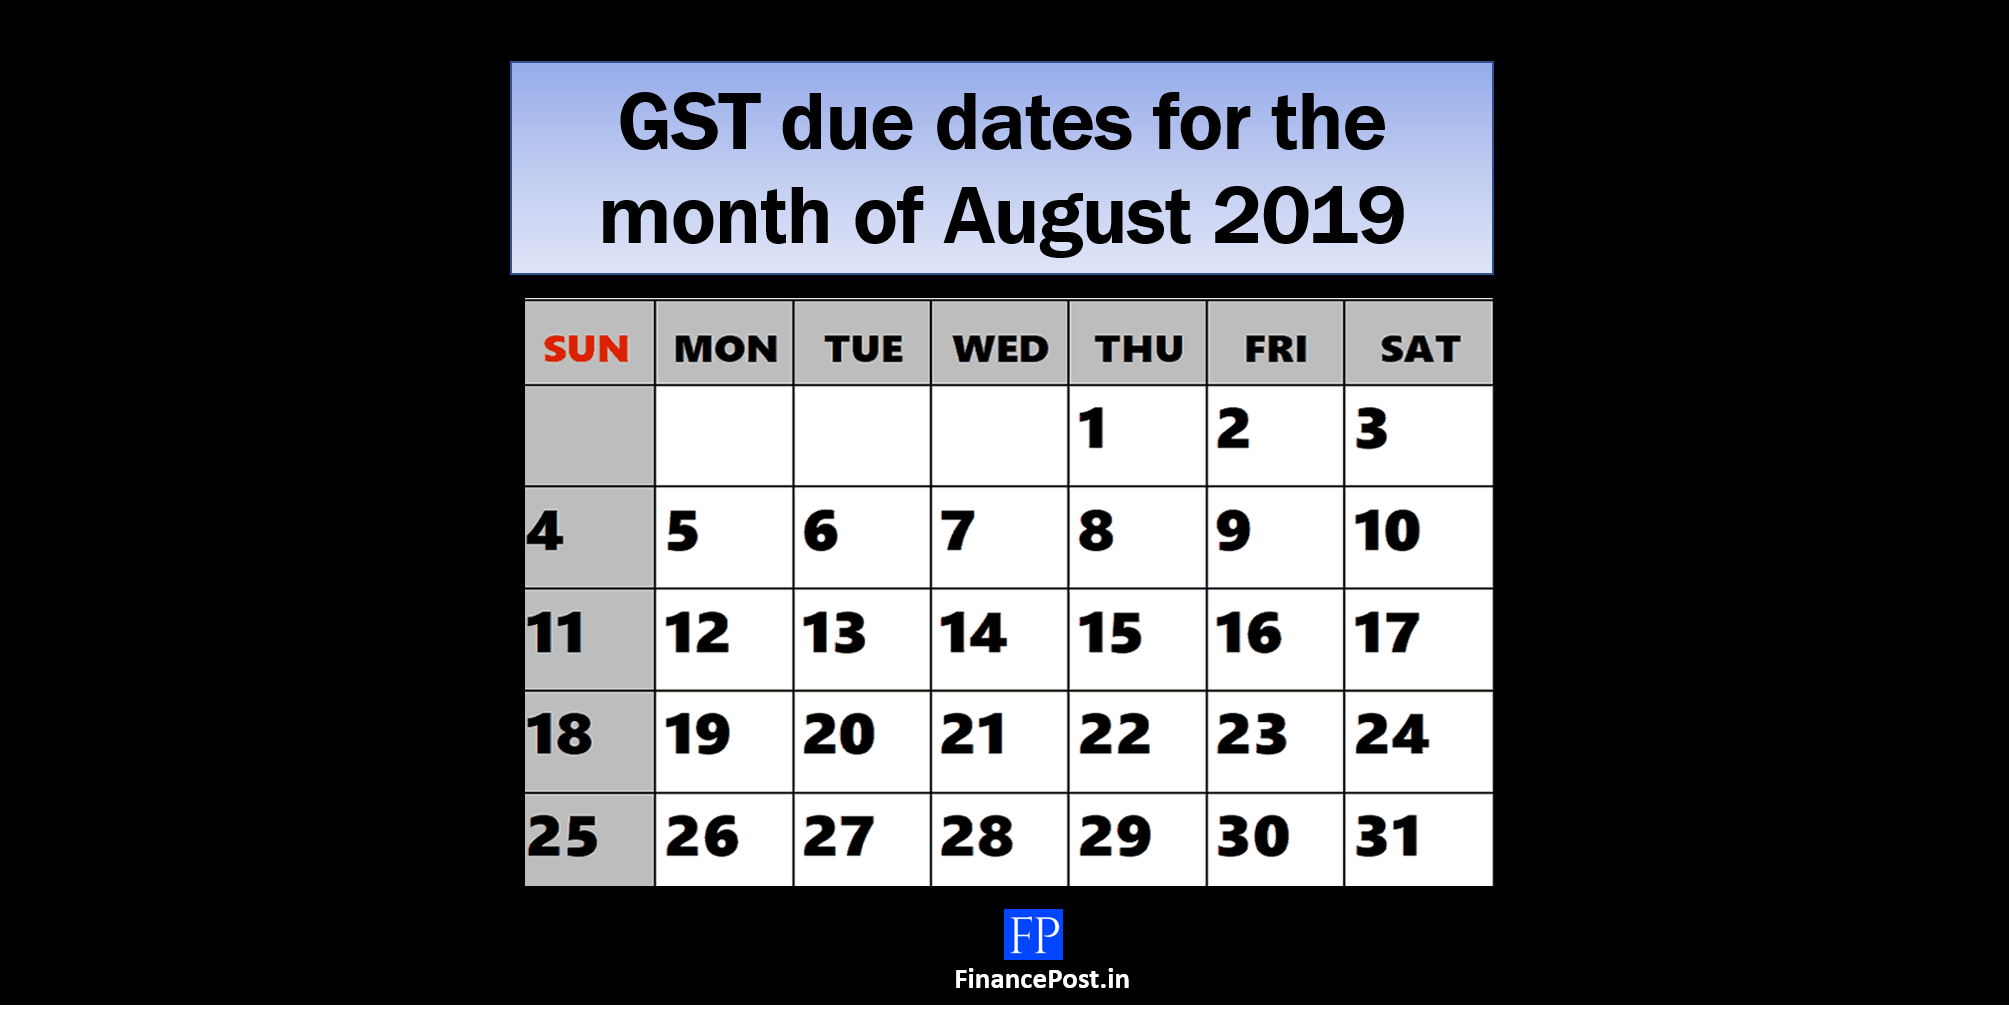 gst due date for the month of August 2019